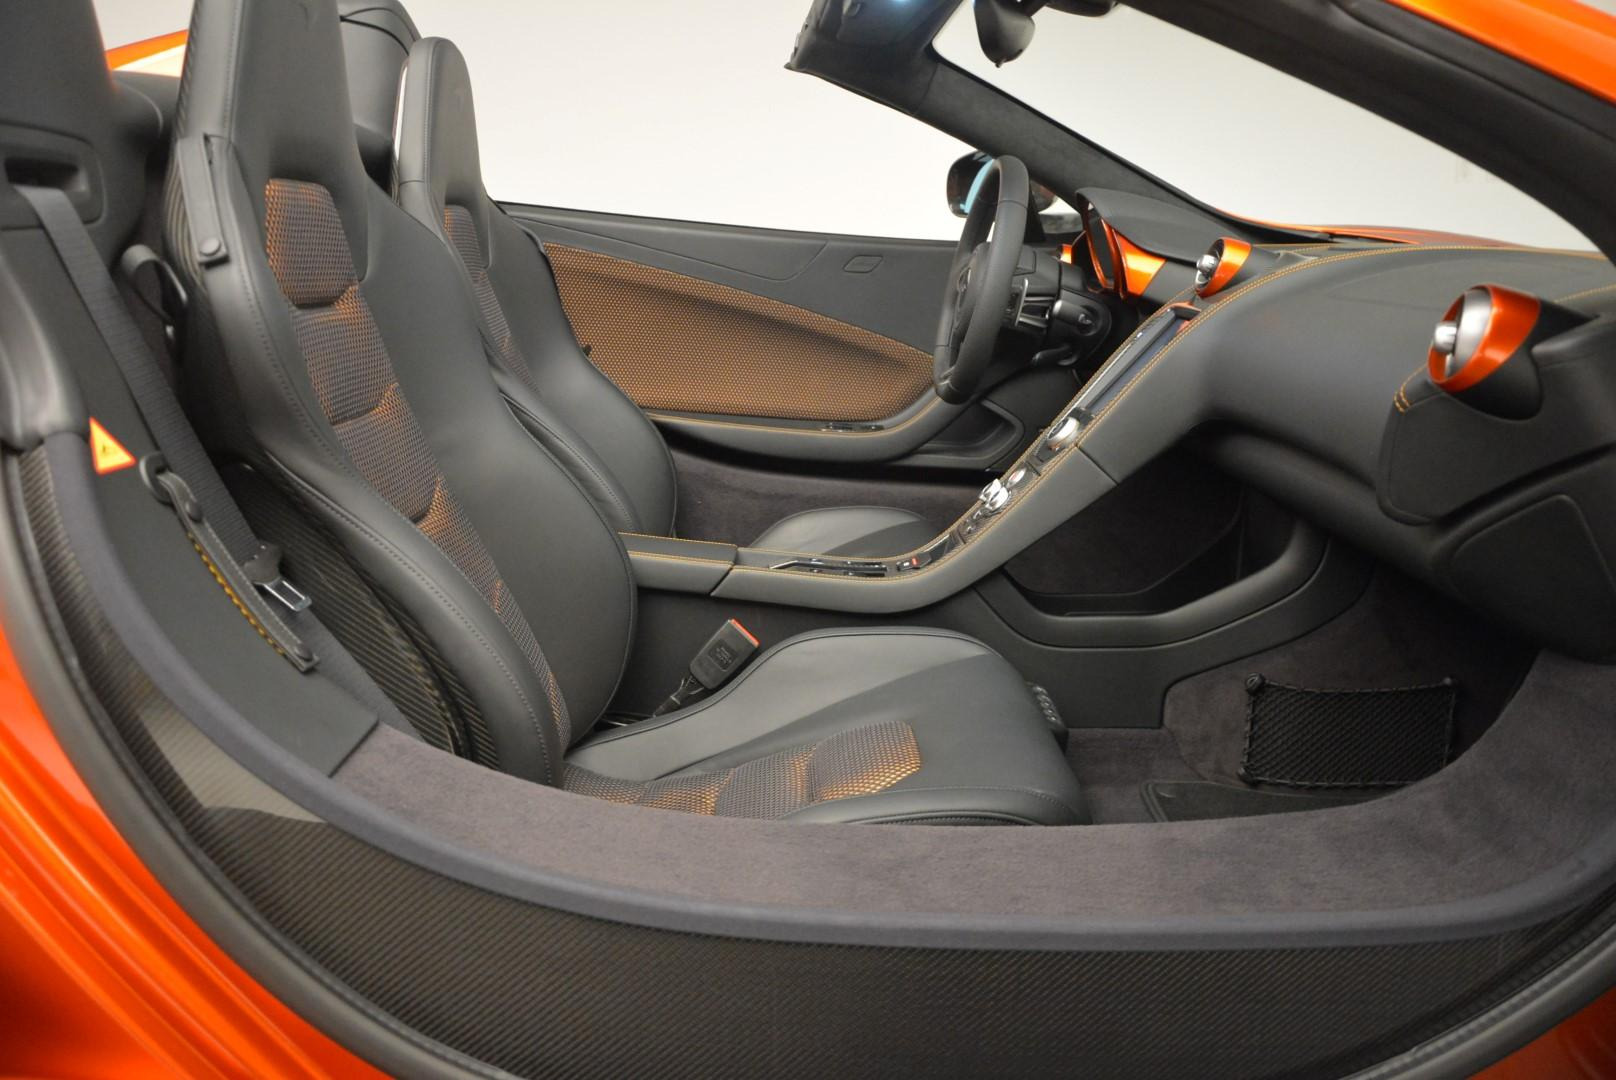 Used 2013 McLaren MP4-12C Base For Sale In Greenwich, CT. Alfa Romeo of Greenwich, 3070 66_p26